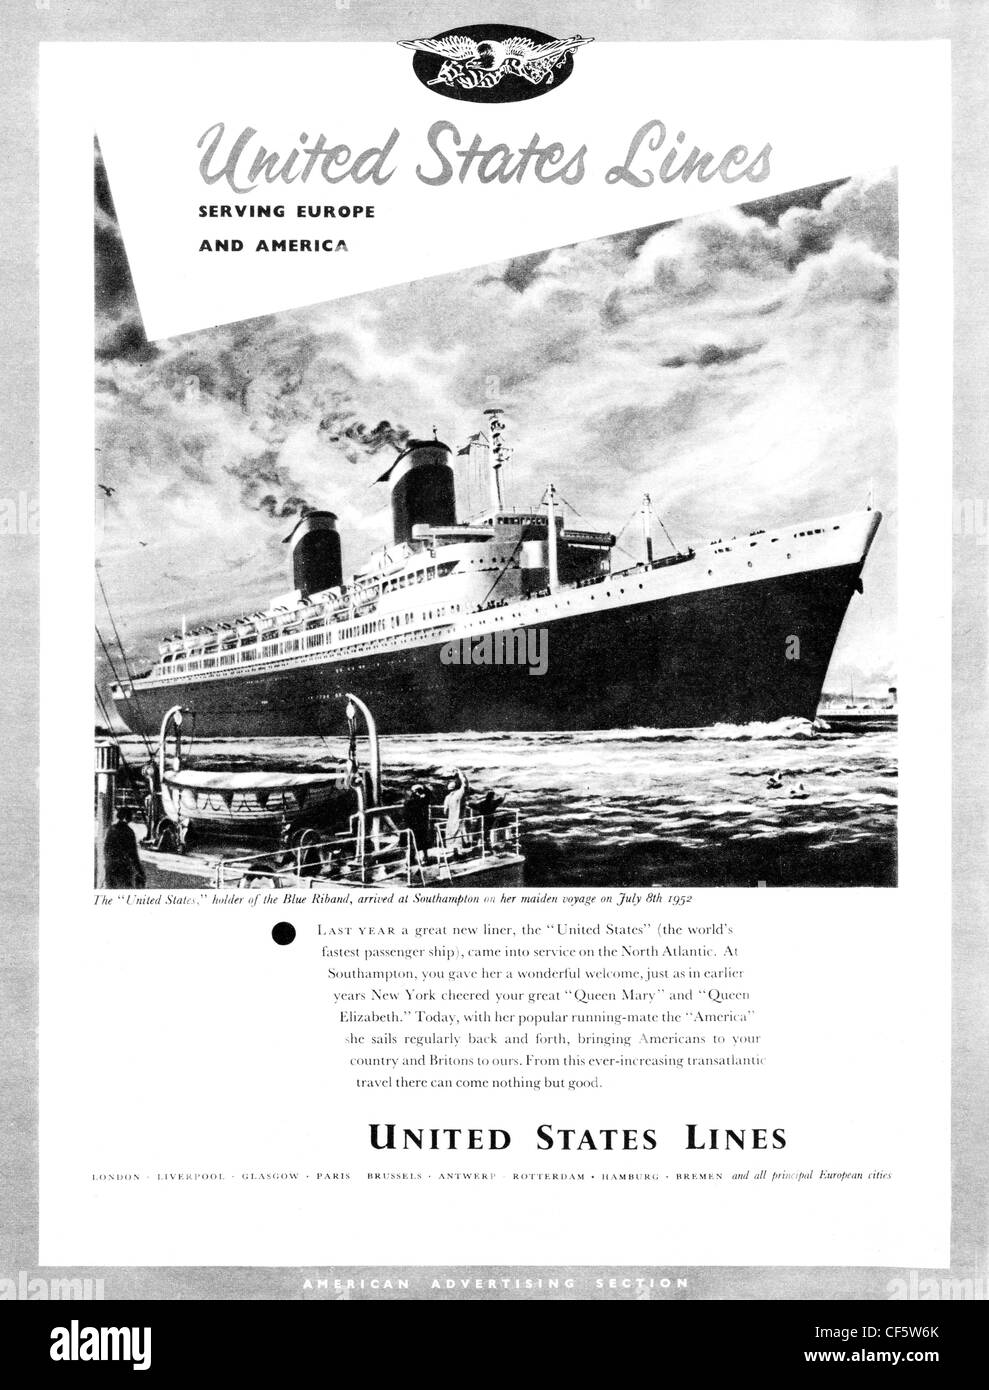 United States Lines cruise ship travel advert from 1953 Stock Photo